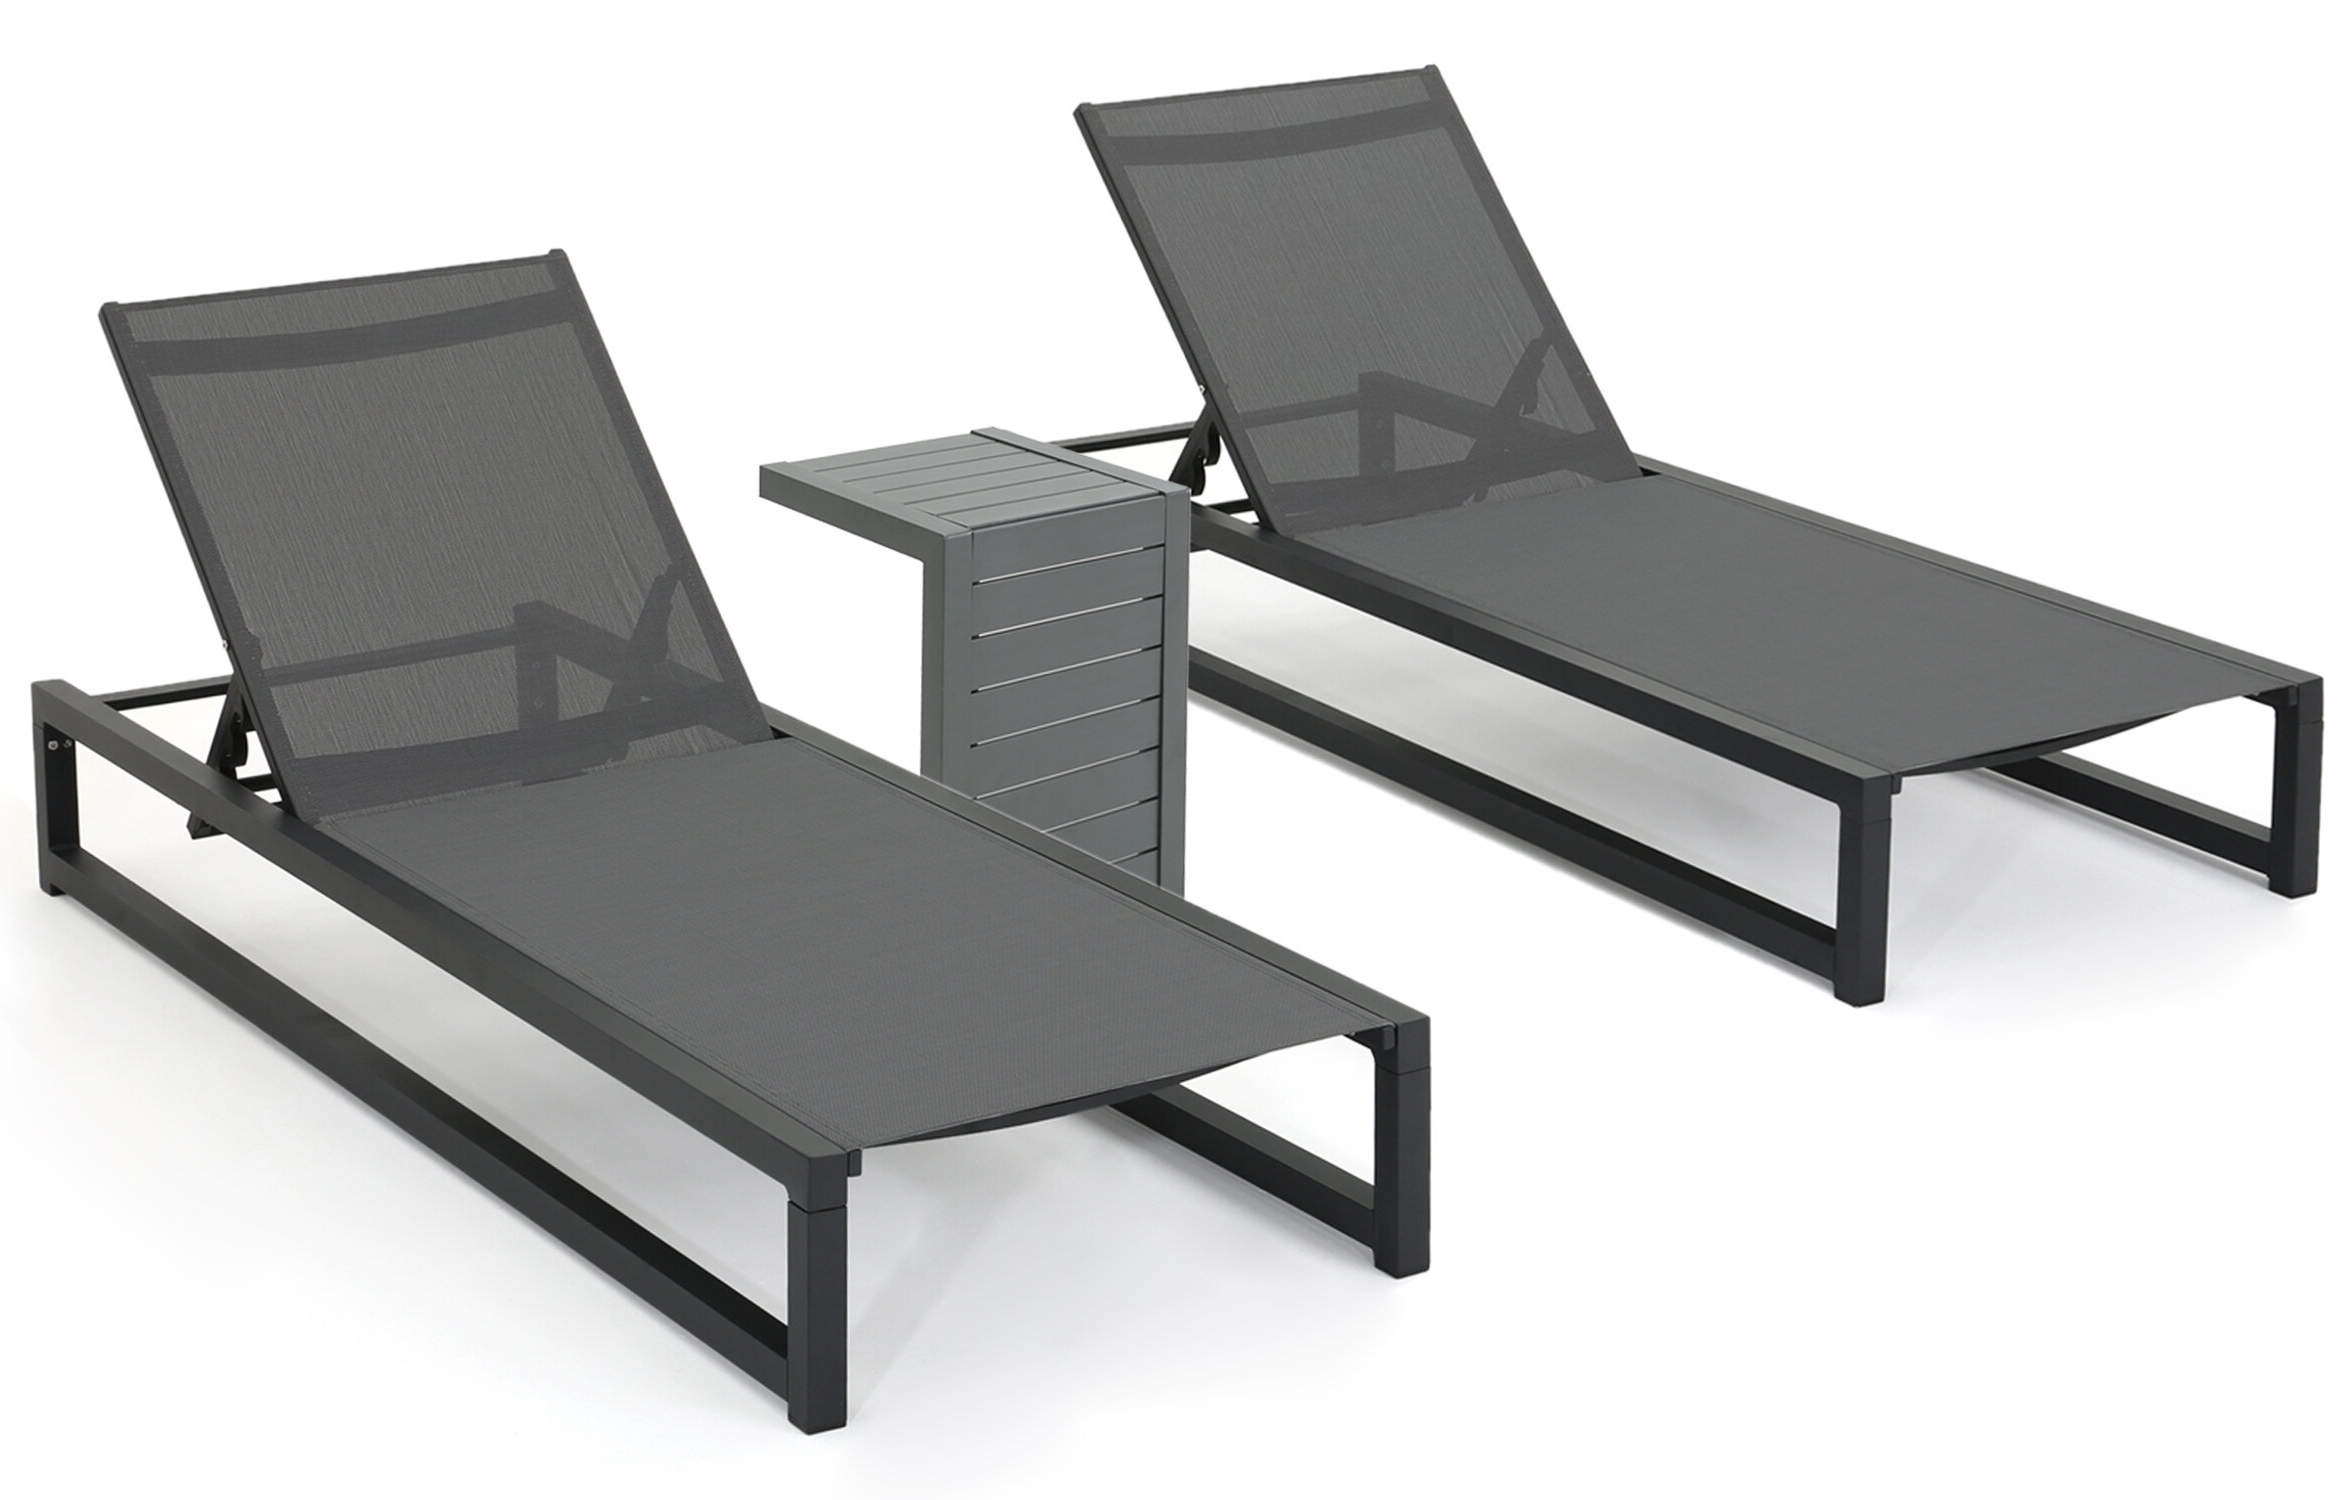 Most Up To Date Santini Reclining Chaise Lounge With Table Regarding Plastic Chaise Lounges W/ Wheels (Gallery 18 of 25)